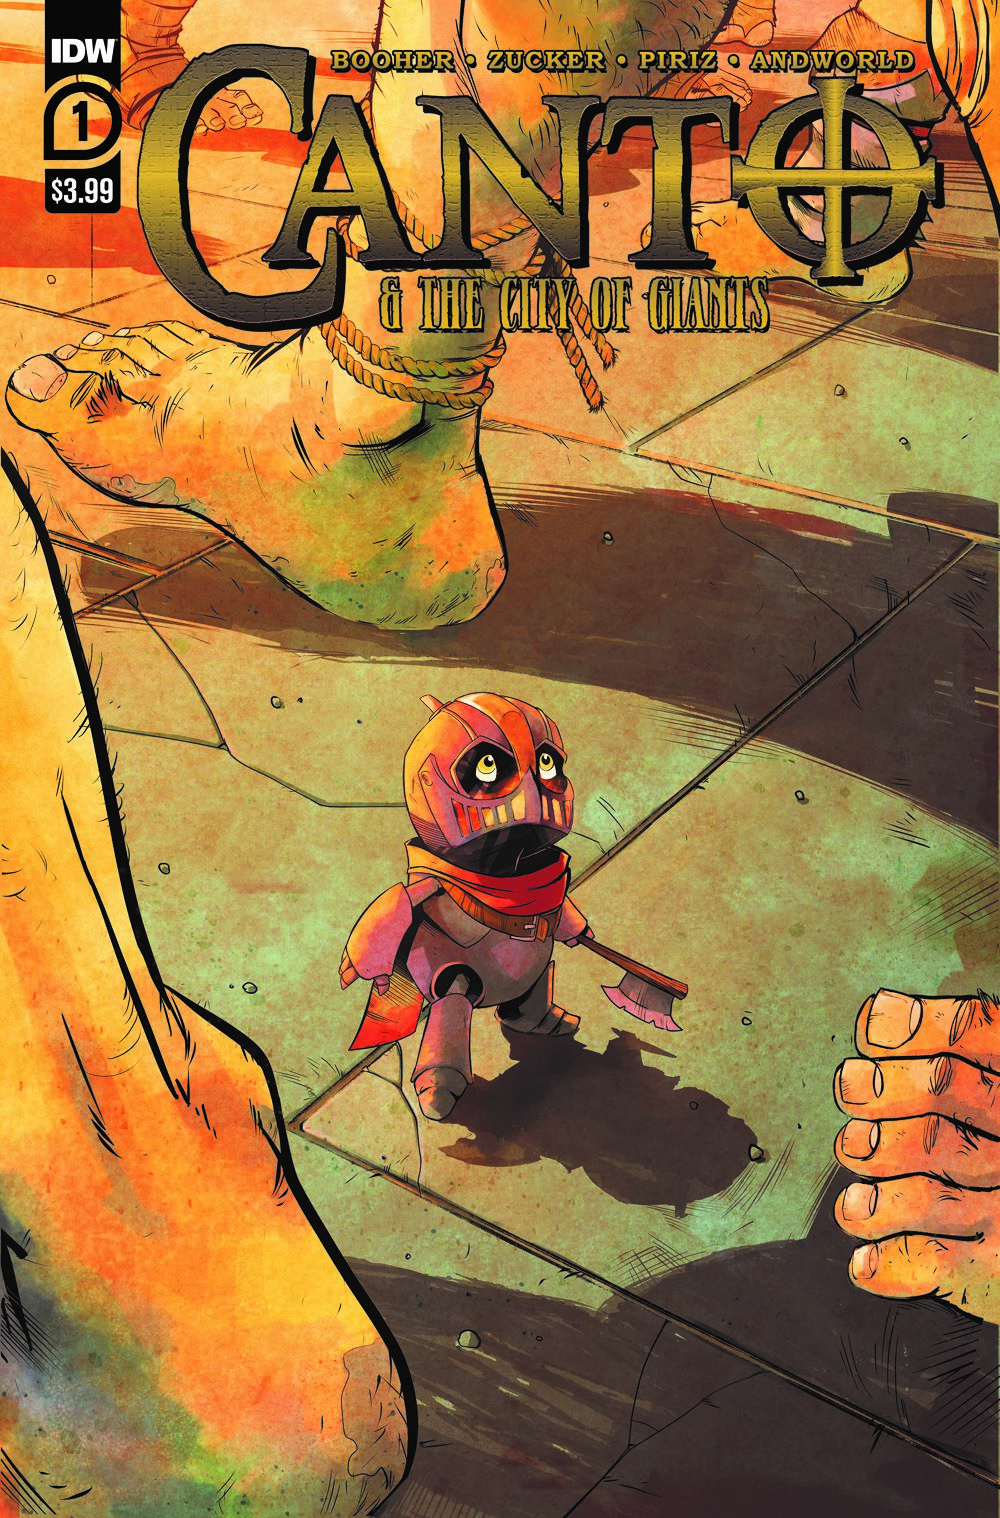 Canto-CoG01_cvrA ComicList Previews: CANTO AND THE CITY OF GIANTS #1 (OF 3)